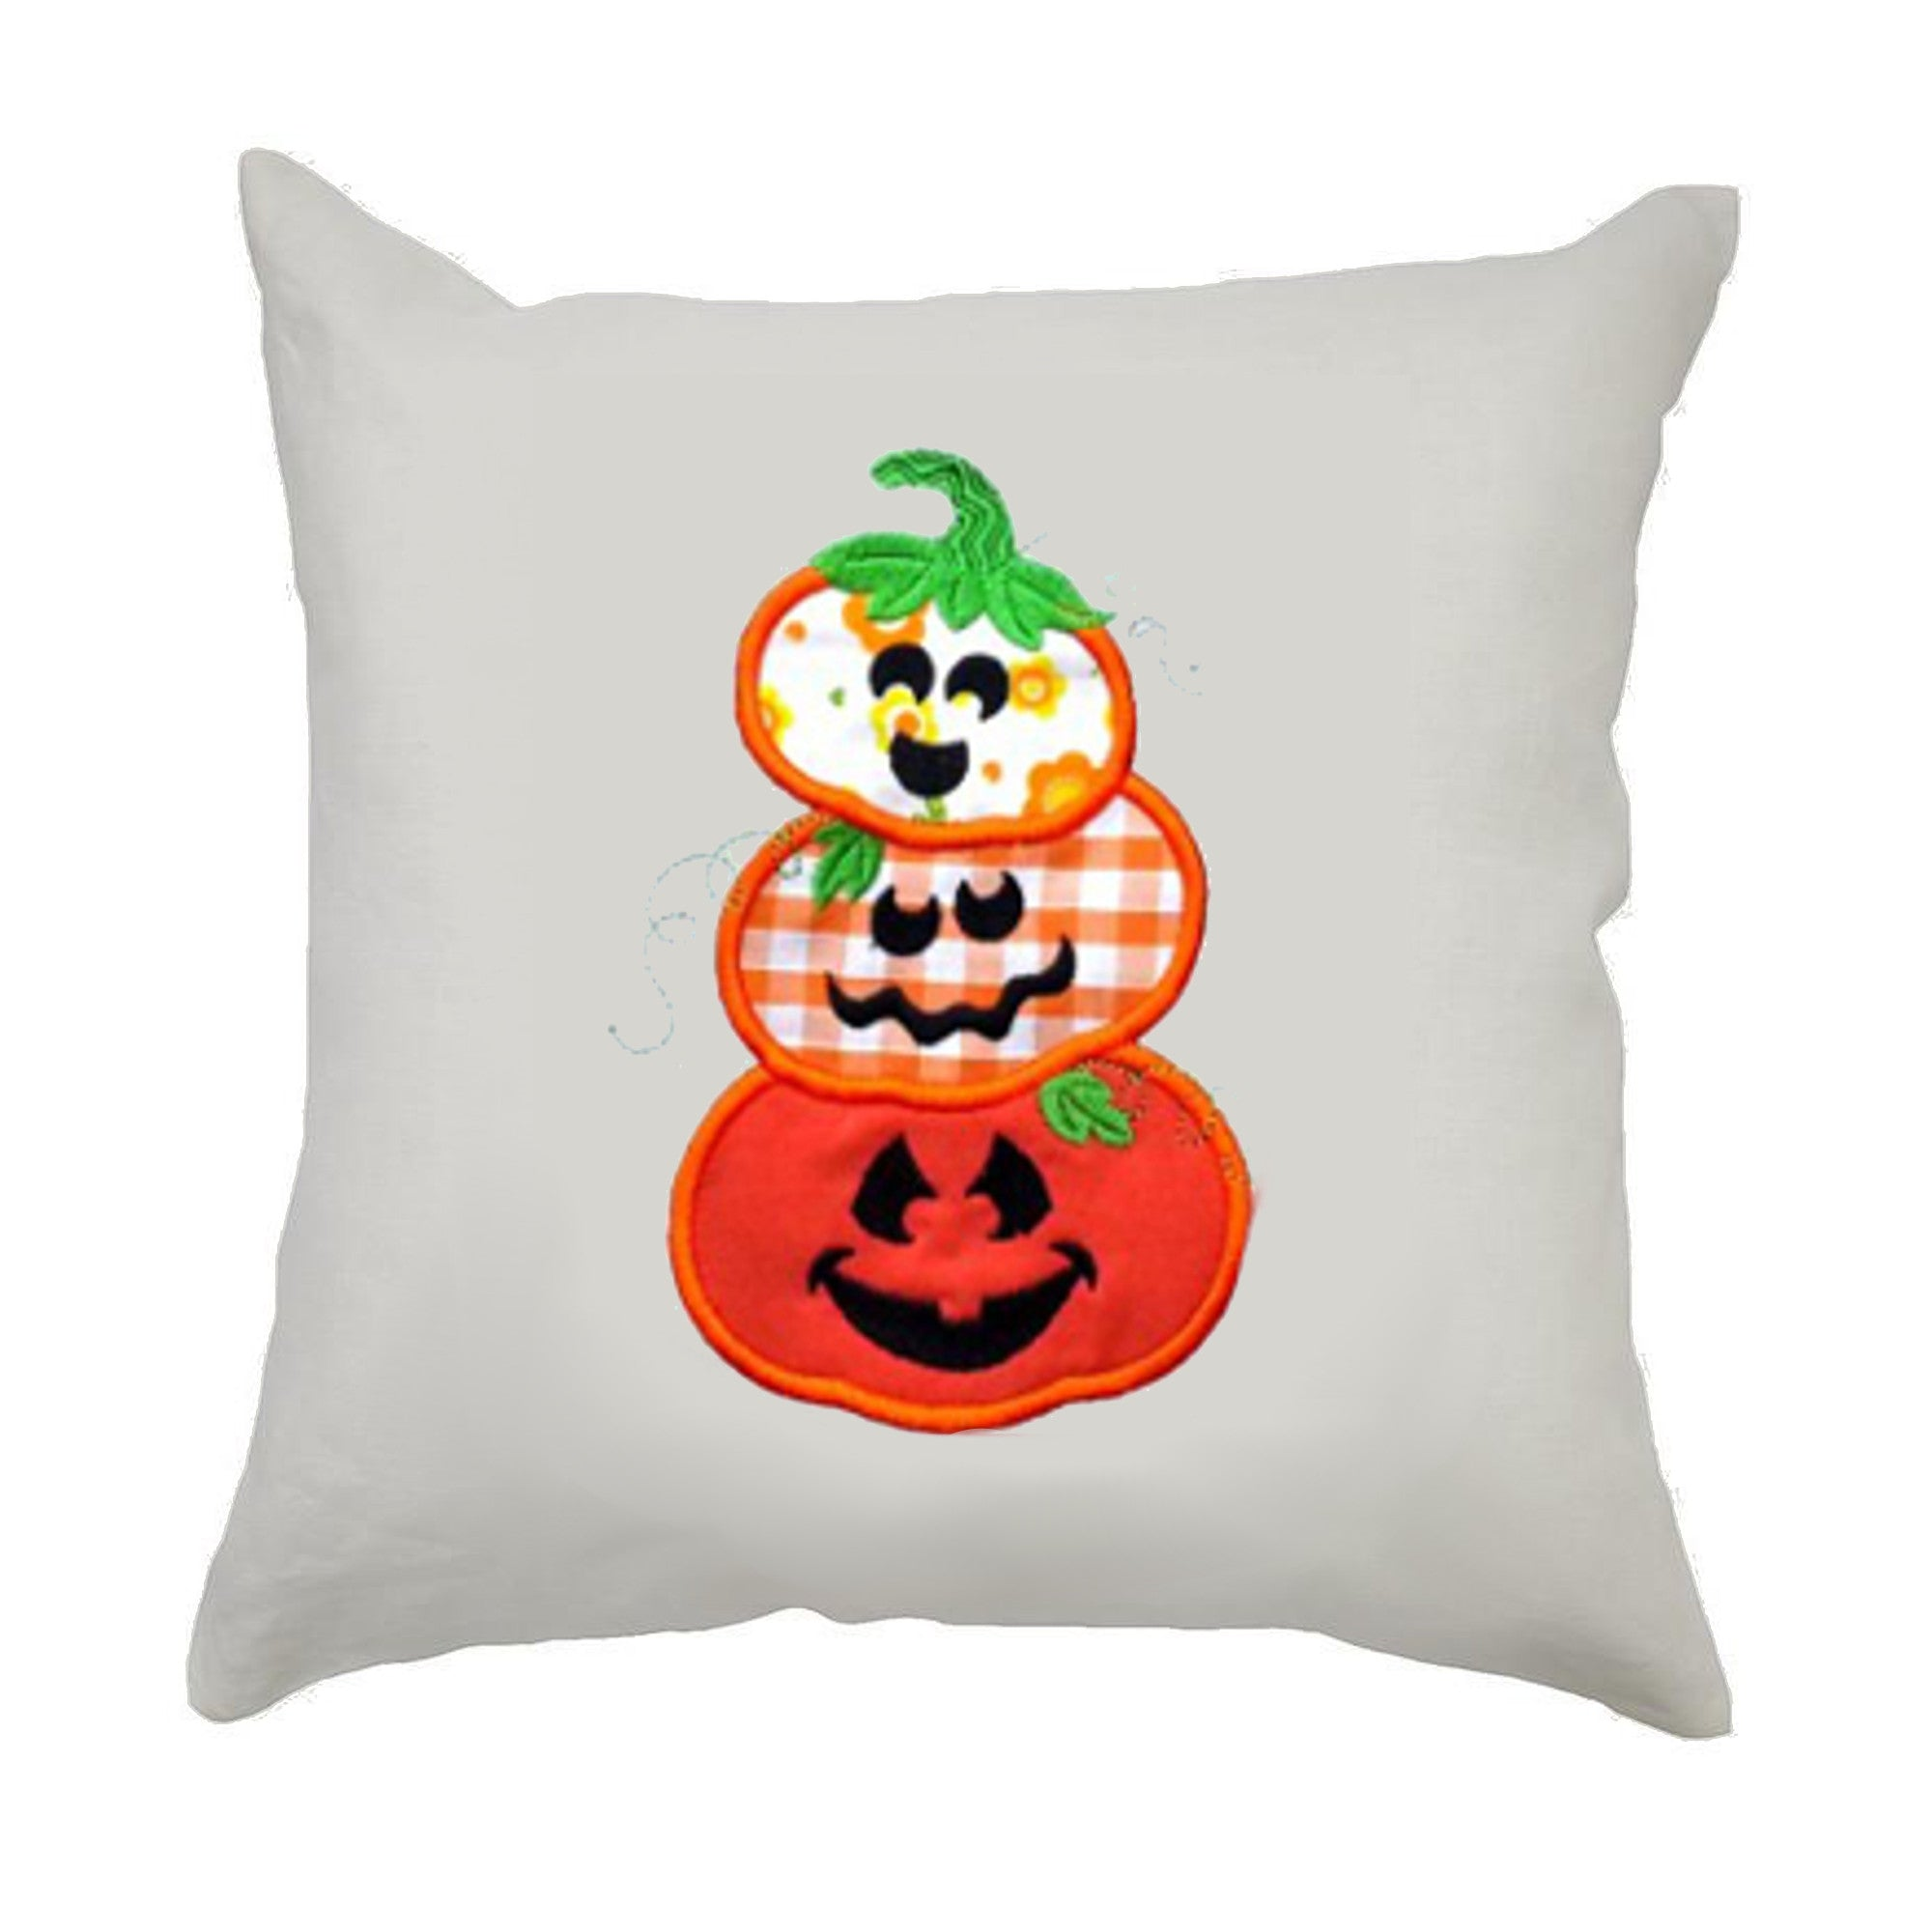 Pumpkin Stack Cushion